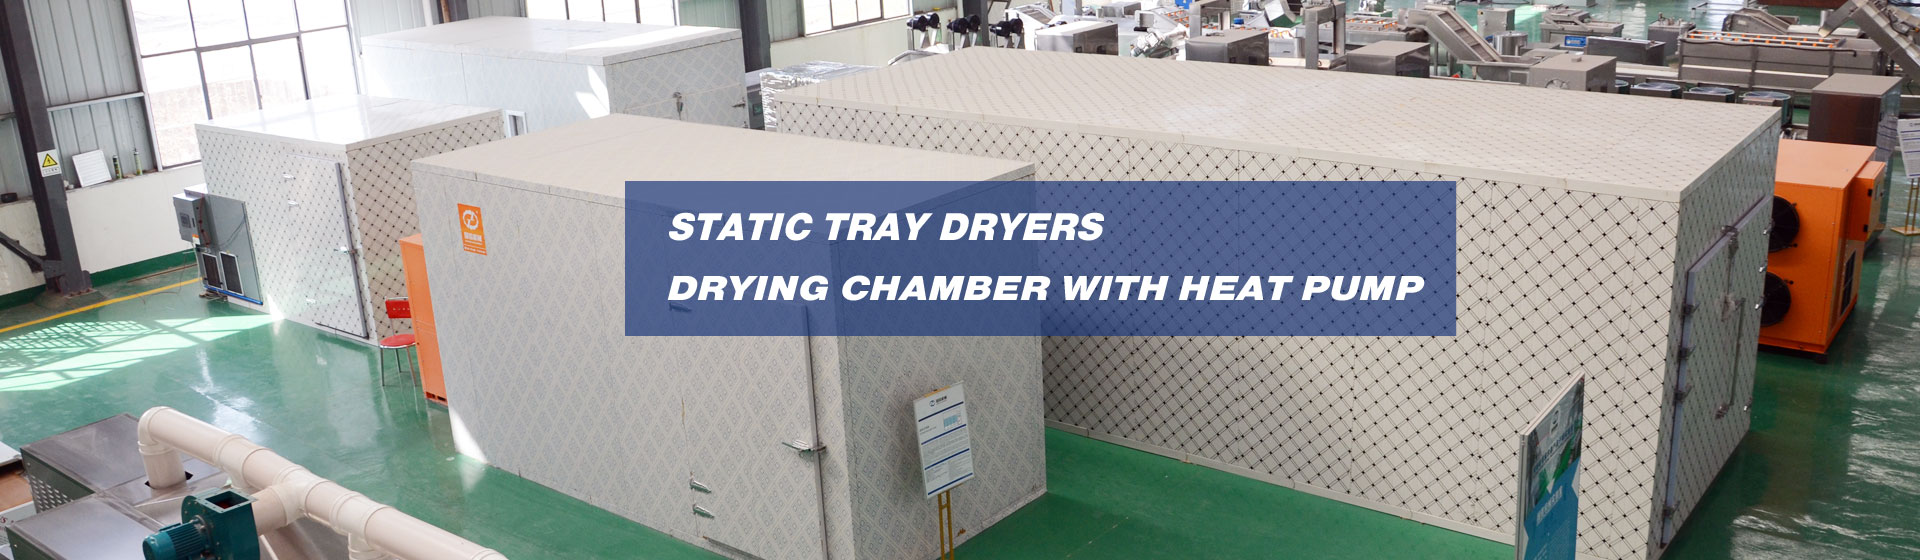 static tray dryer,drying chamber with heat pump